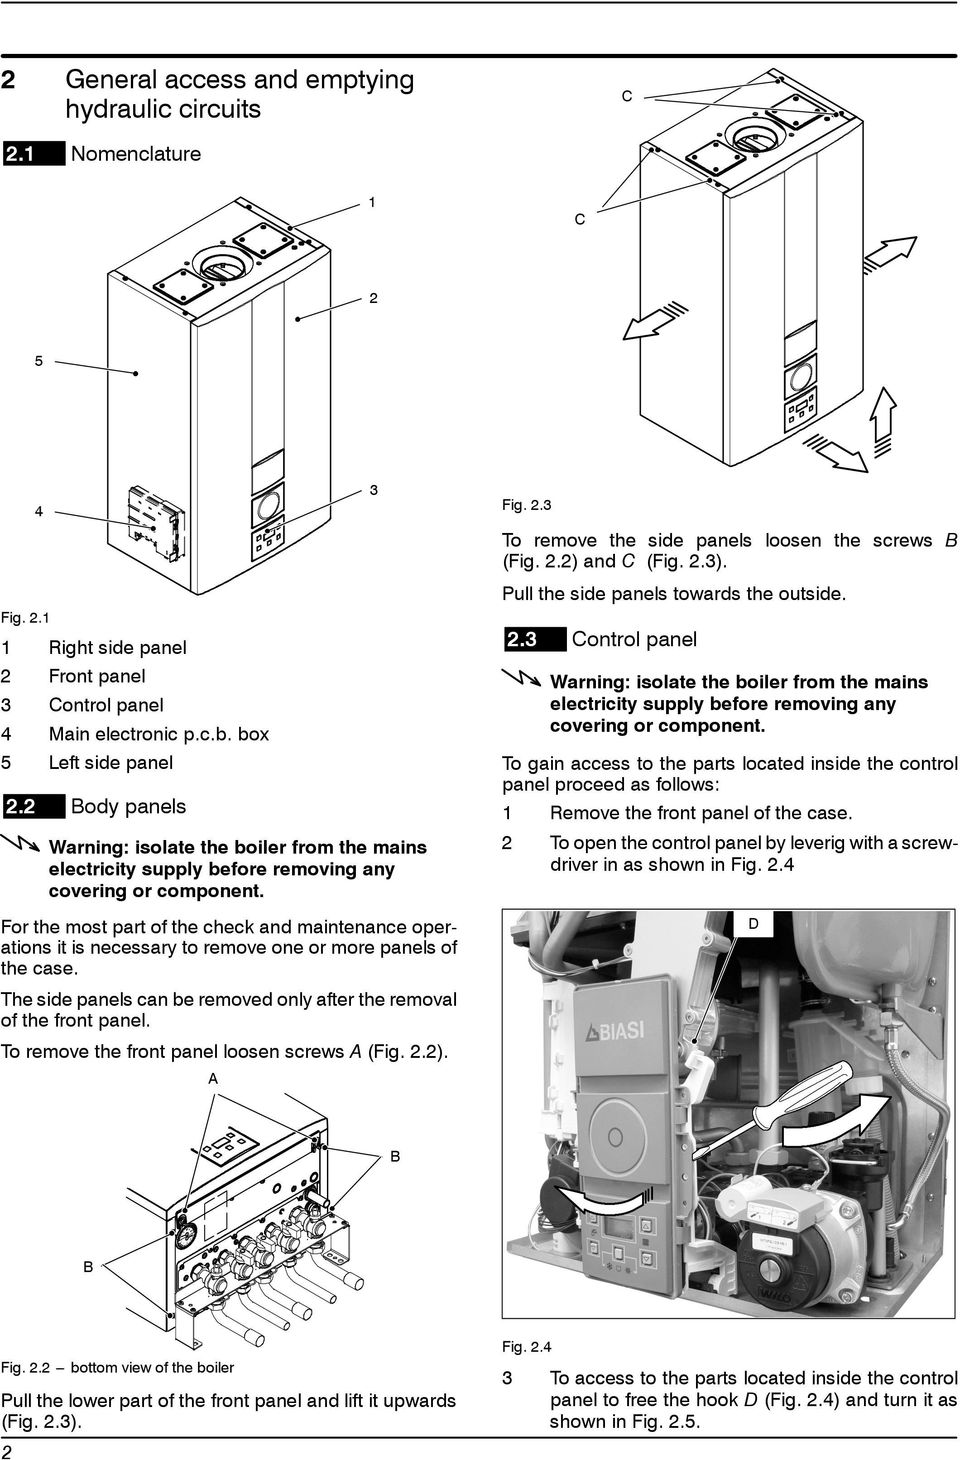 To remove the front panel loosen screws (Fig. 2.2). 3 Fig. 2.3 To remove the side panels loosen the screws (Fig. 2.2) and C (Fig. 2.3). Pullthesidepanelstowardstheoutside. 2.3 Control panel To gain access to the parts located inside the control panel proceed as follows: 1 Remove the front panel of the case.